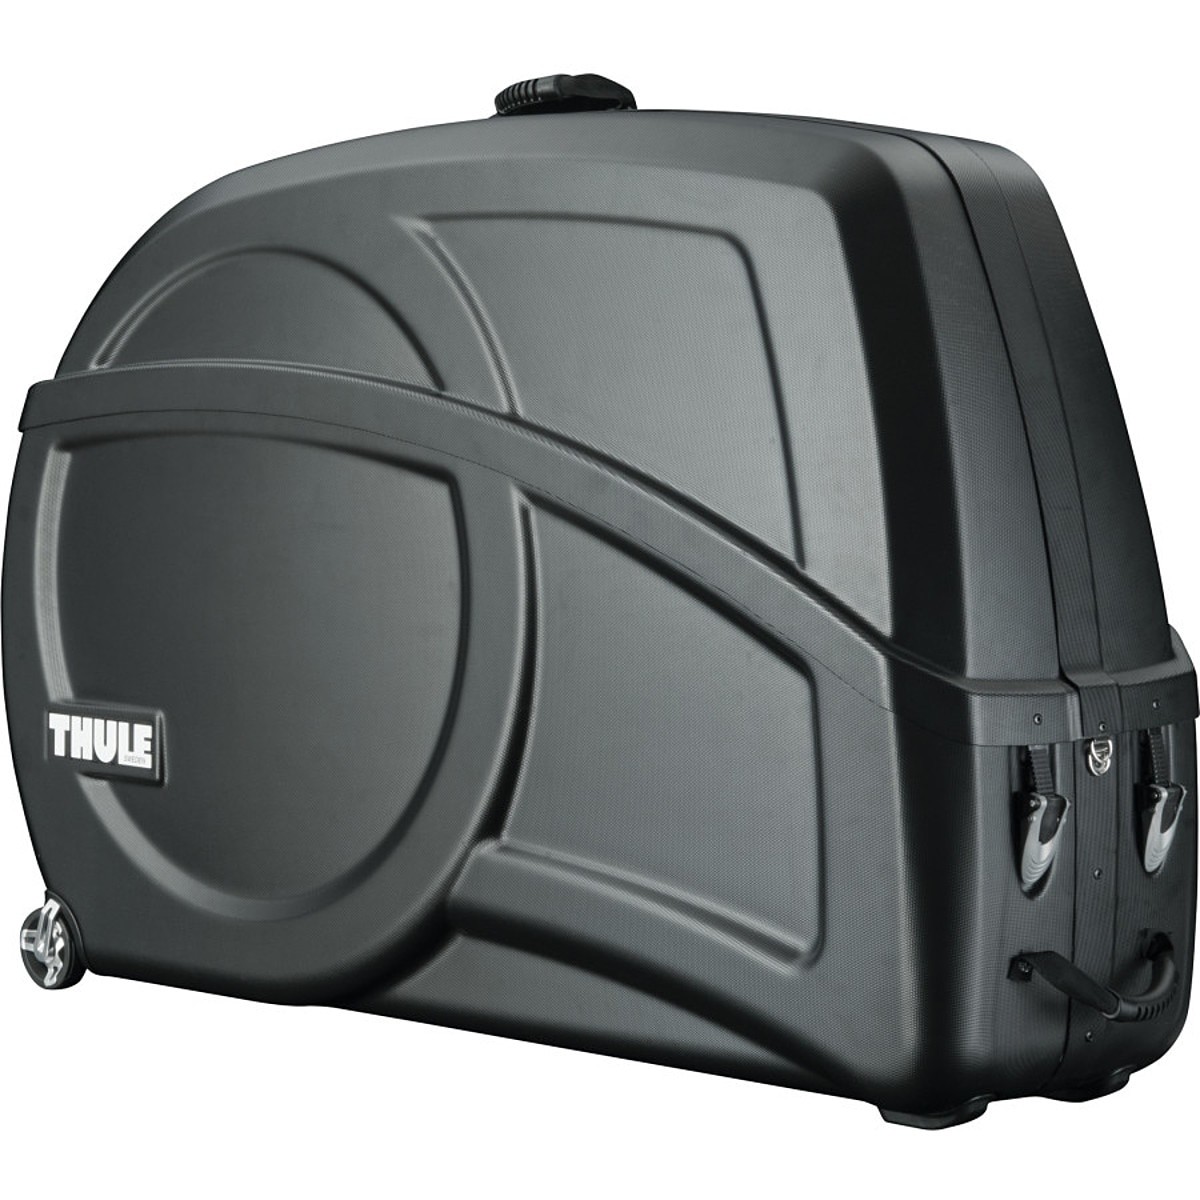 thule round trip transition bike travel case competitive cyclist. Black Bedroom Furniture Sets. Home Design Ideas